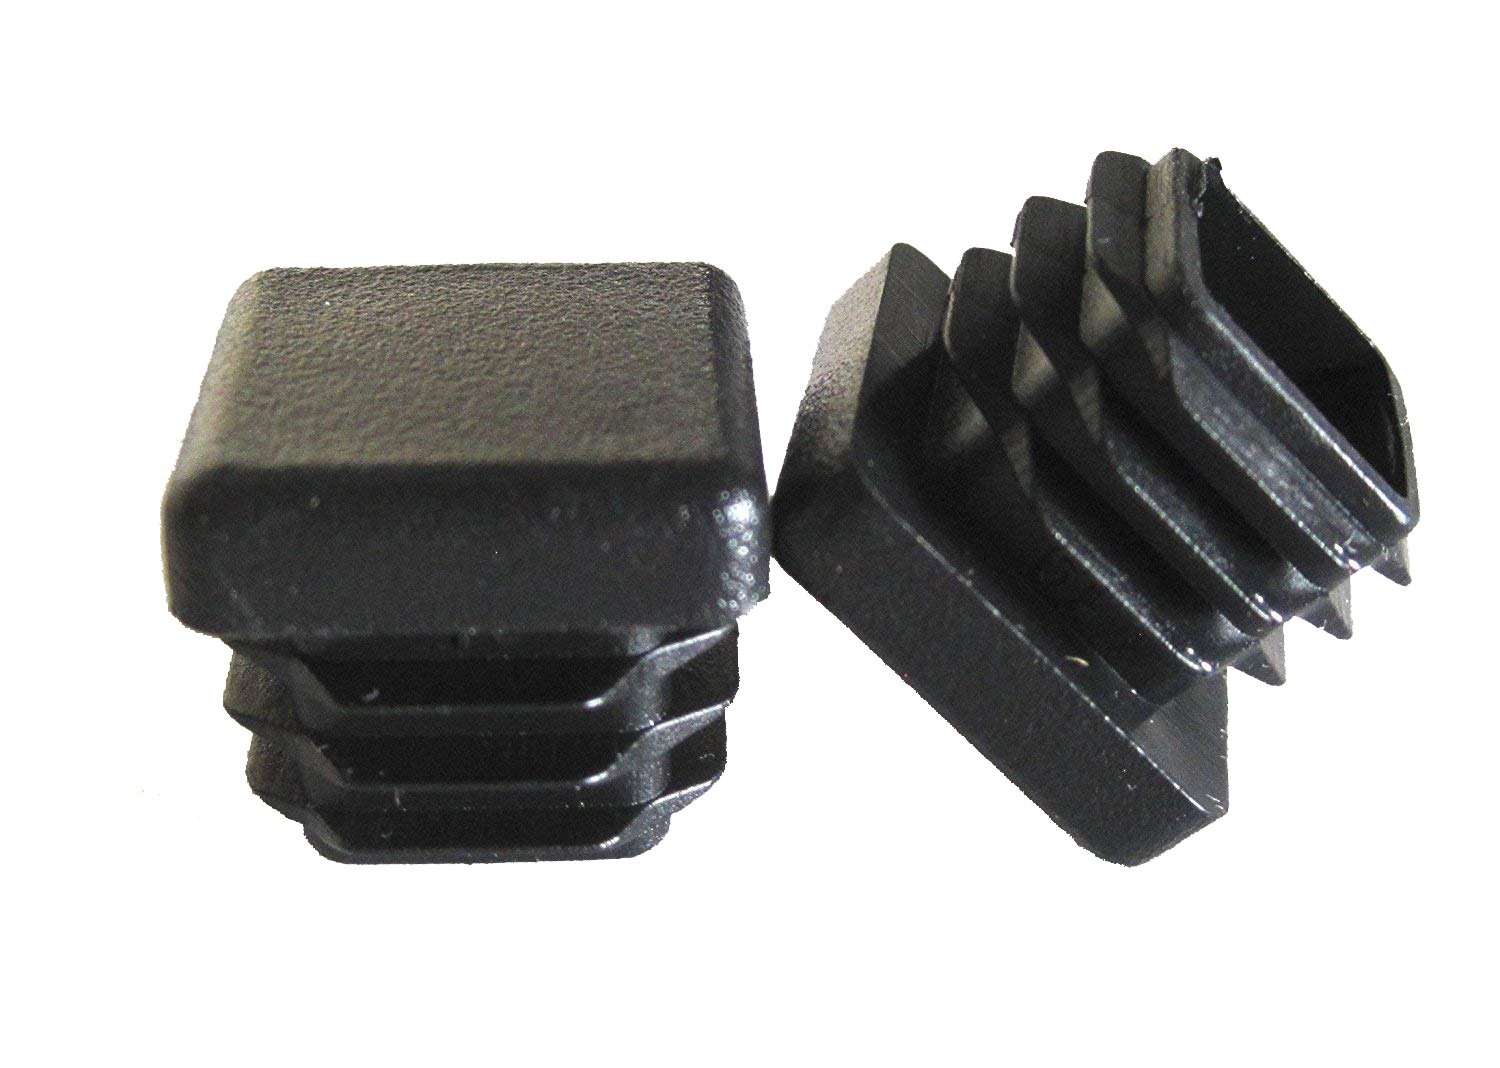 OGC (50 Pack) - 5/8'' Black Square Tubing for Plastic Plugs by 5/8 Inch Cap Cover Tube Chair Glide Insert Finishing Plug